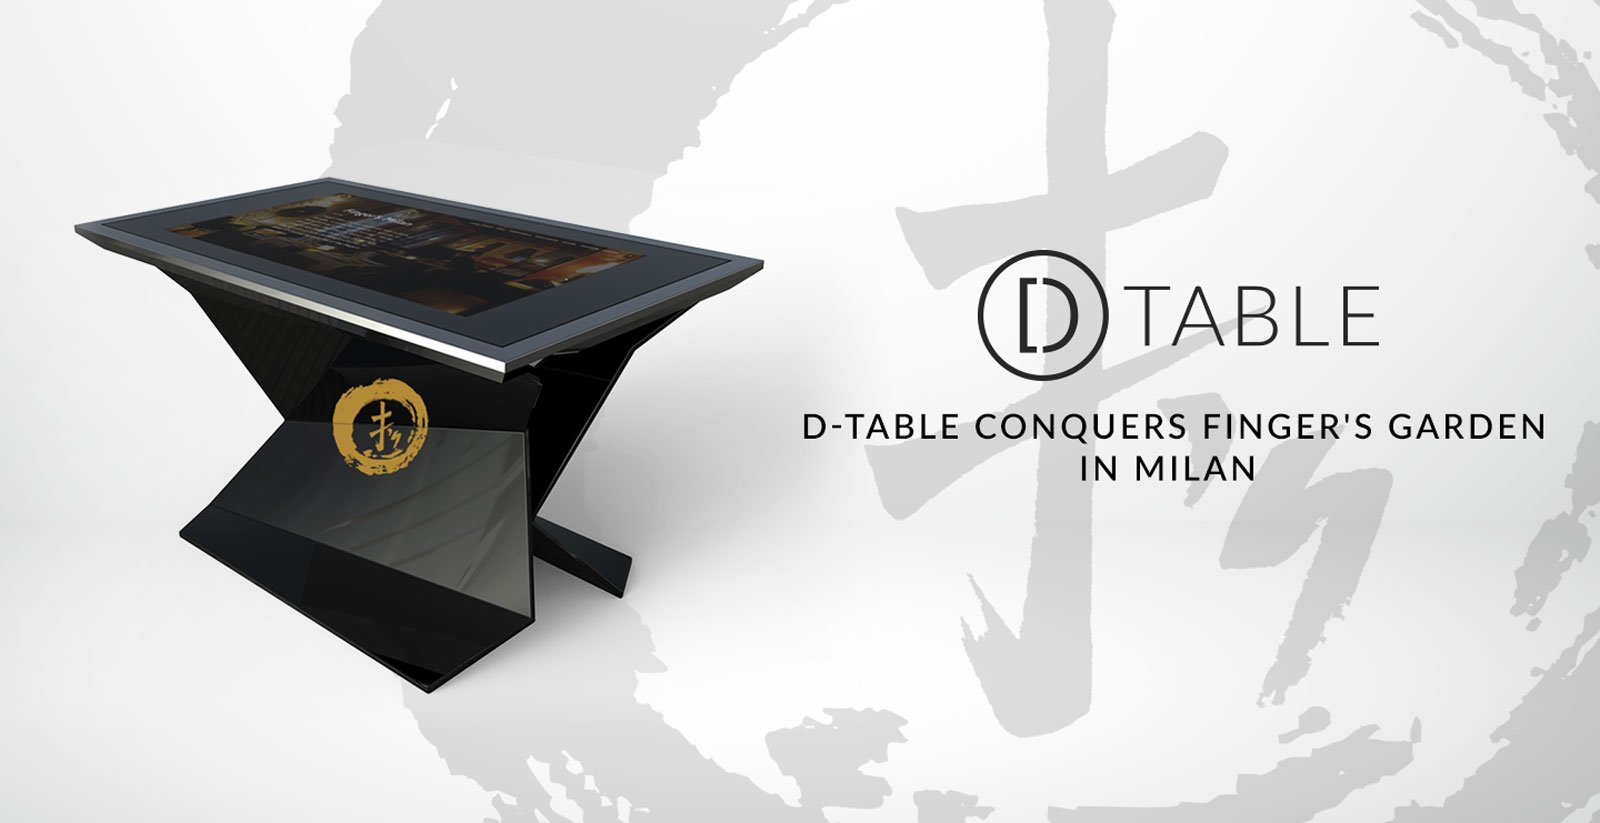 D-TABLE conquers Finger's Garden in Milan